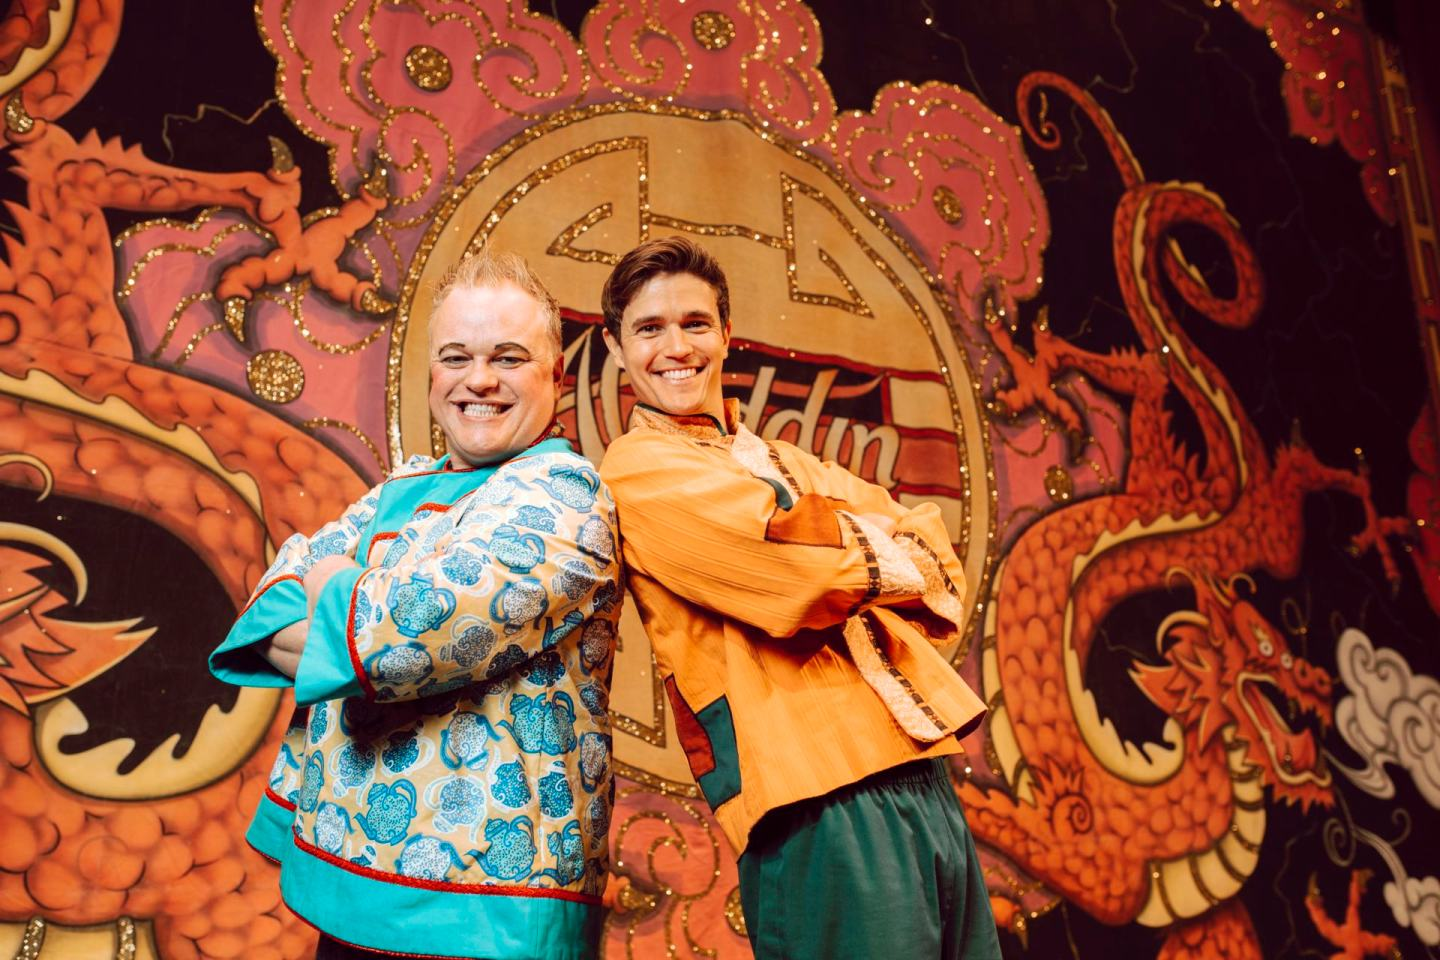 A panto experience with toddlers